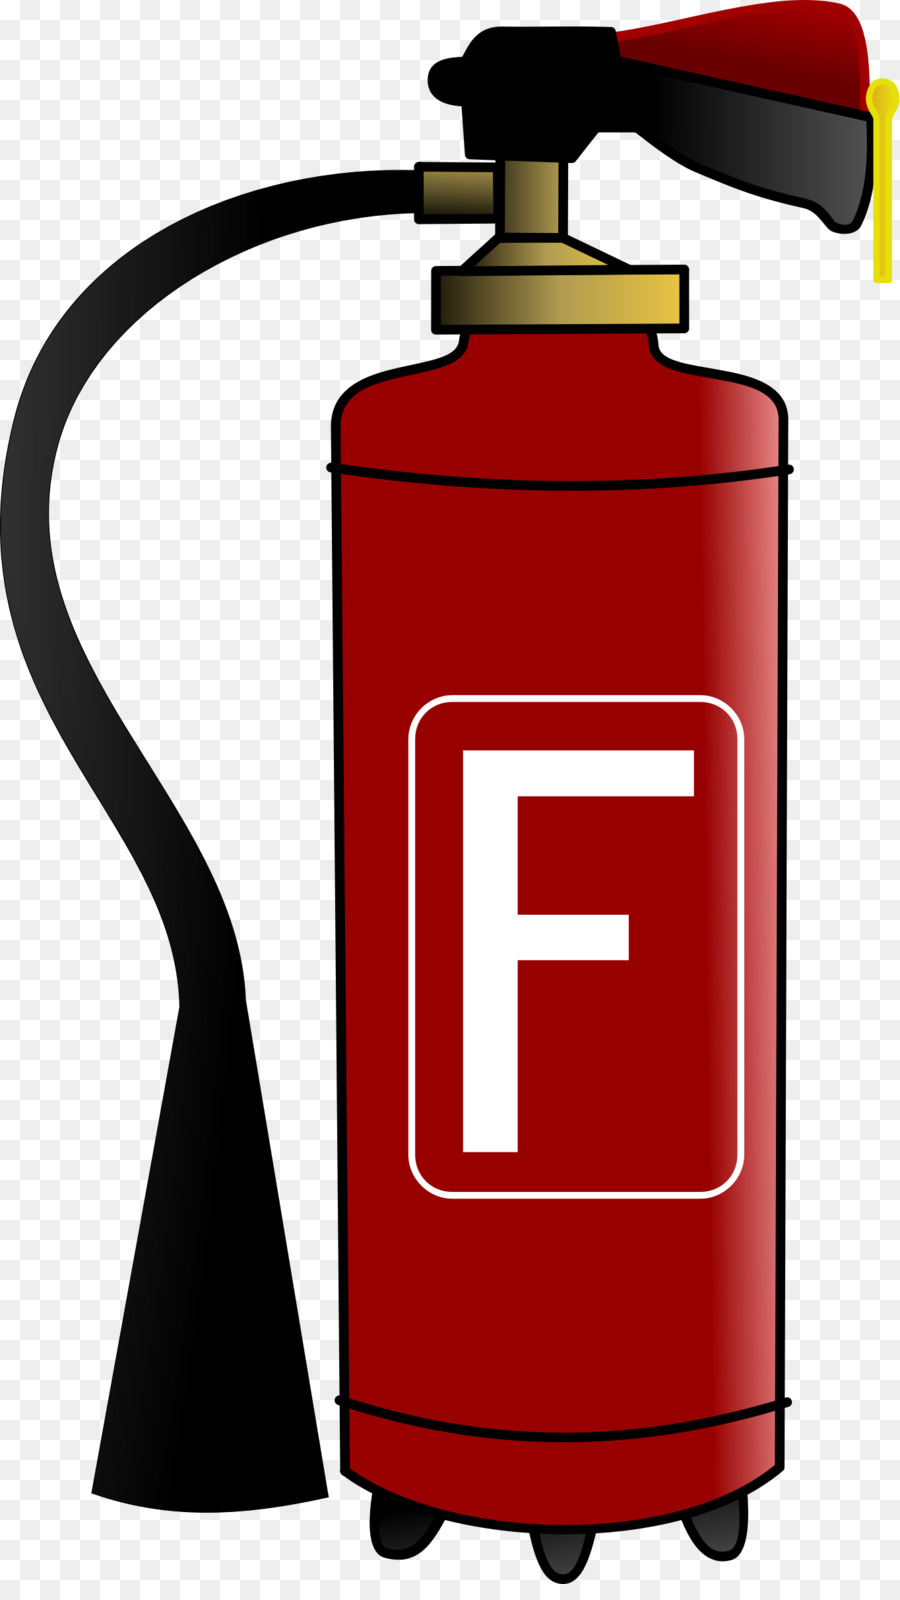 Fire Extinguisher Cliparttransparent png image & clipart free download.